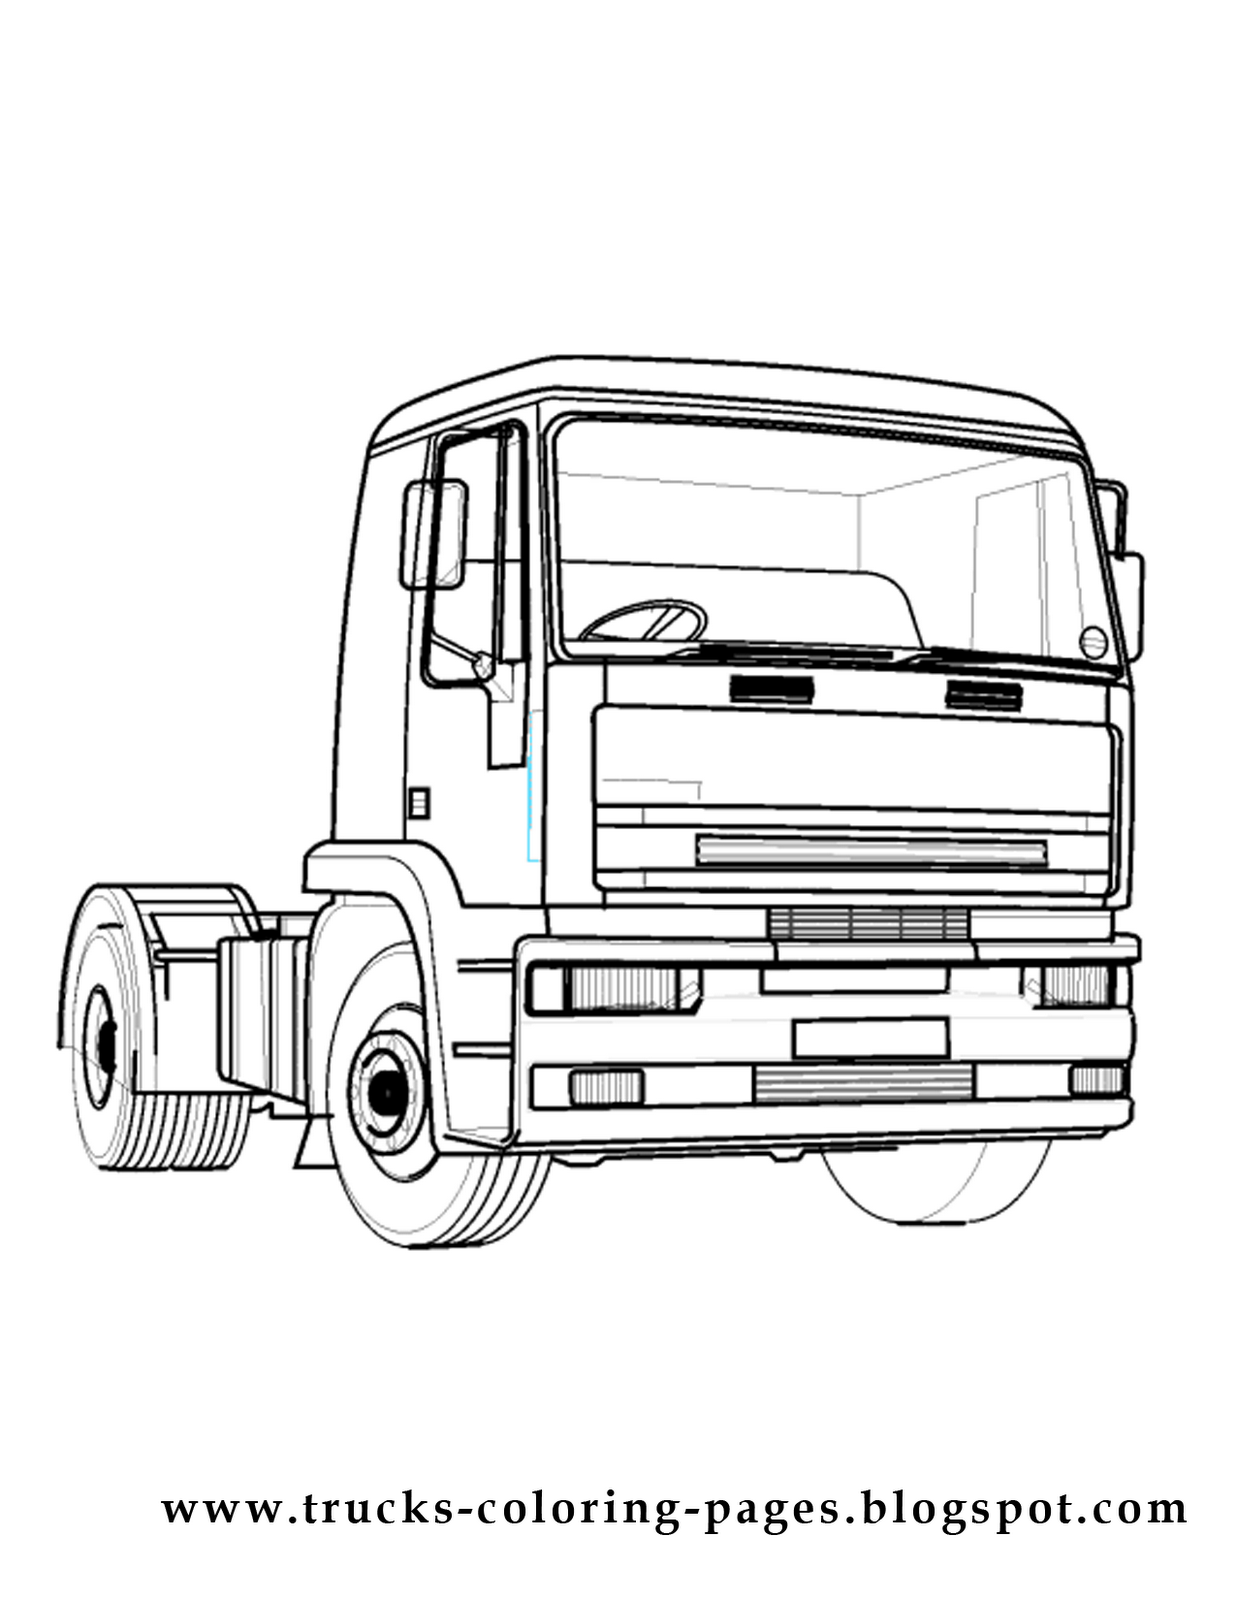 trucks coloring pages more trucks coloring pages